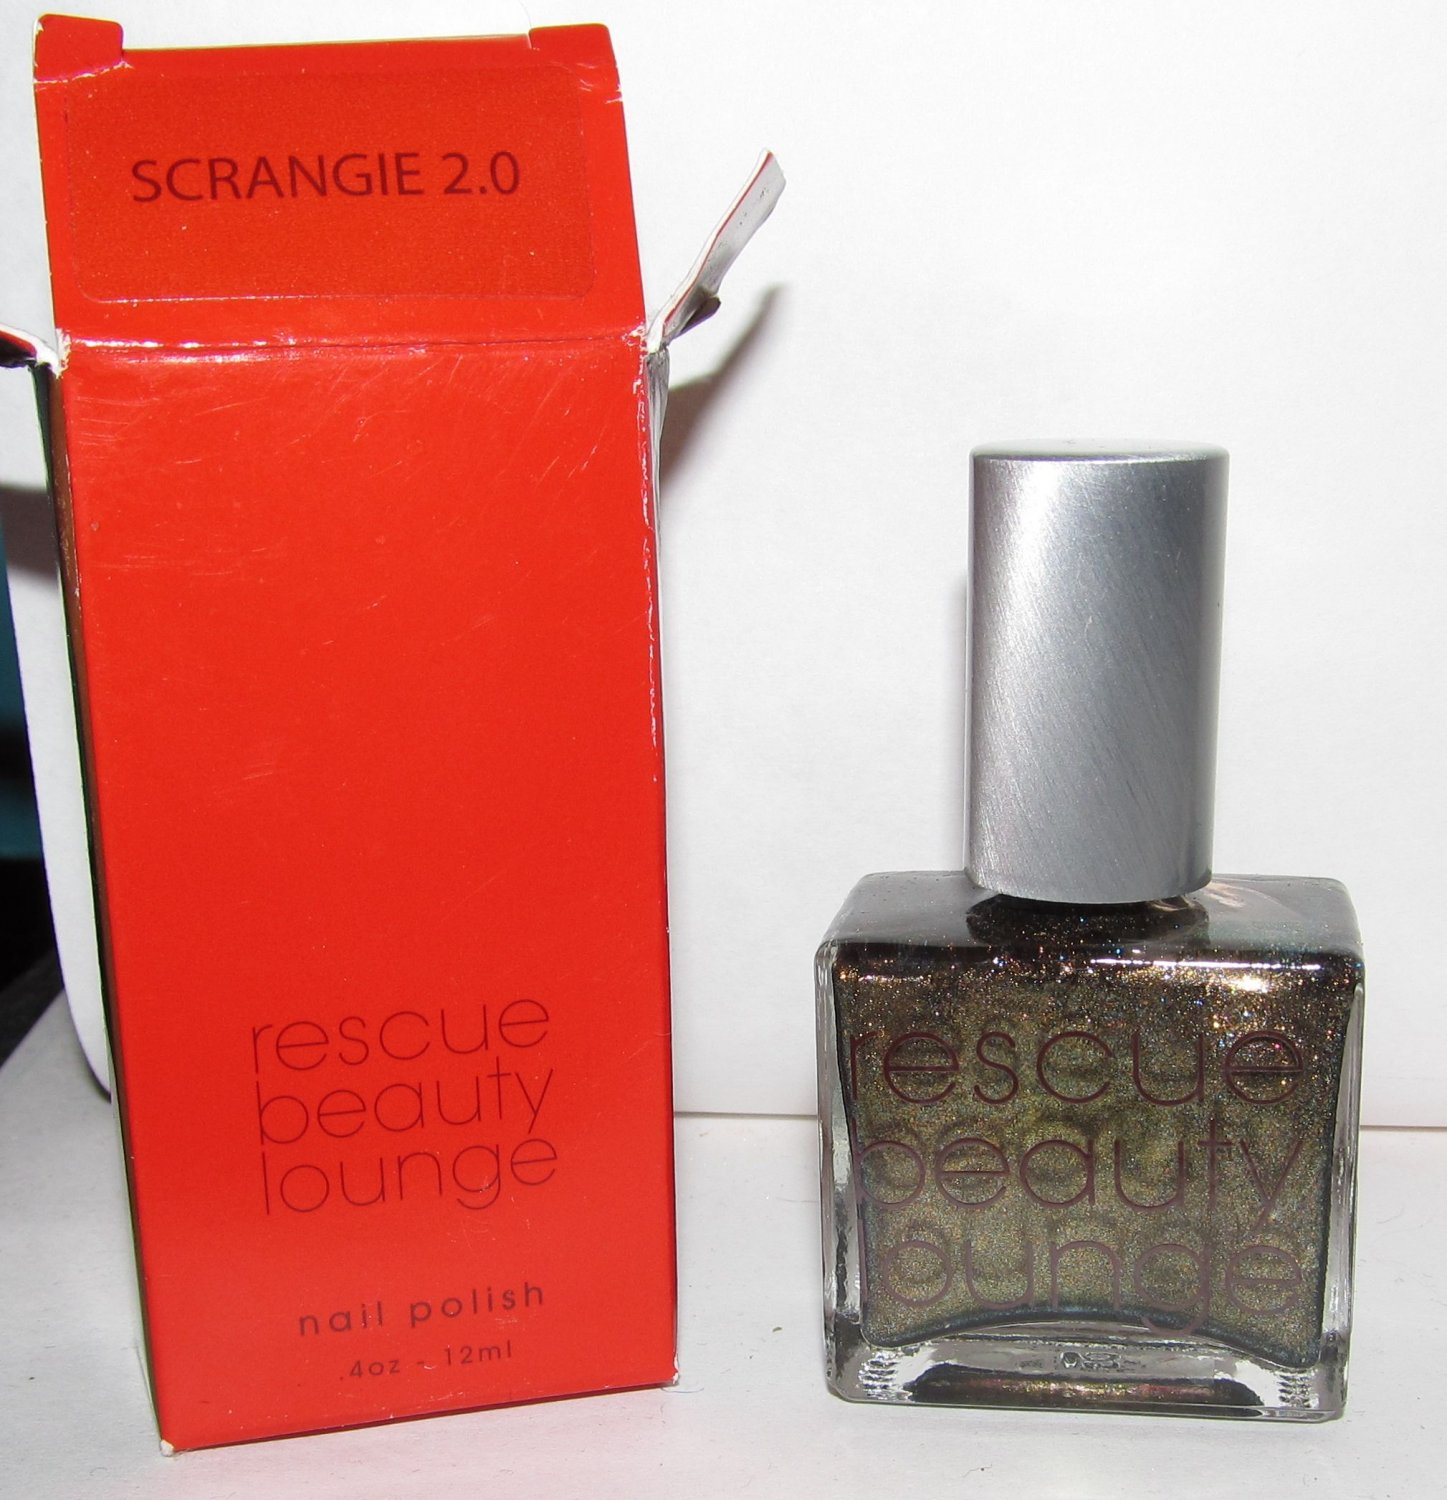 Rescue Beauty Lounge Nail Polish - Scrangie 2.0 - NIB